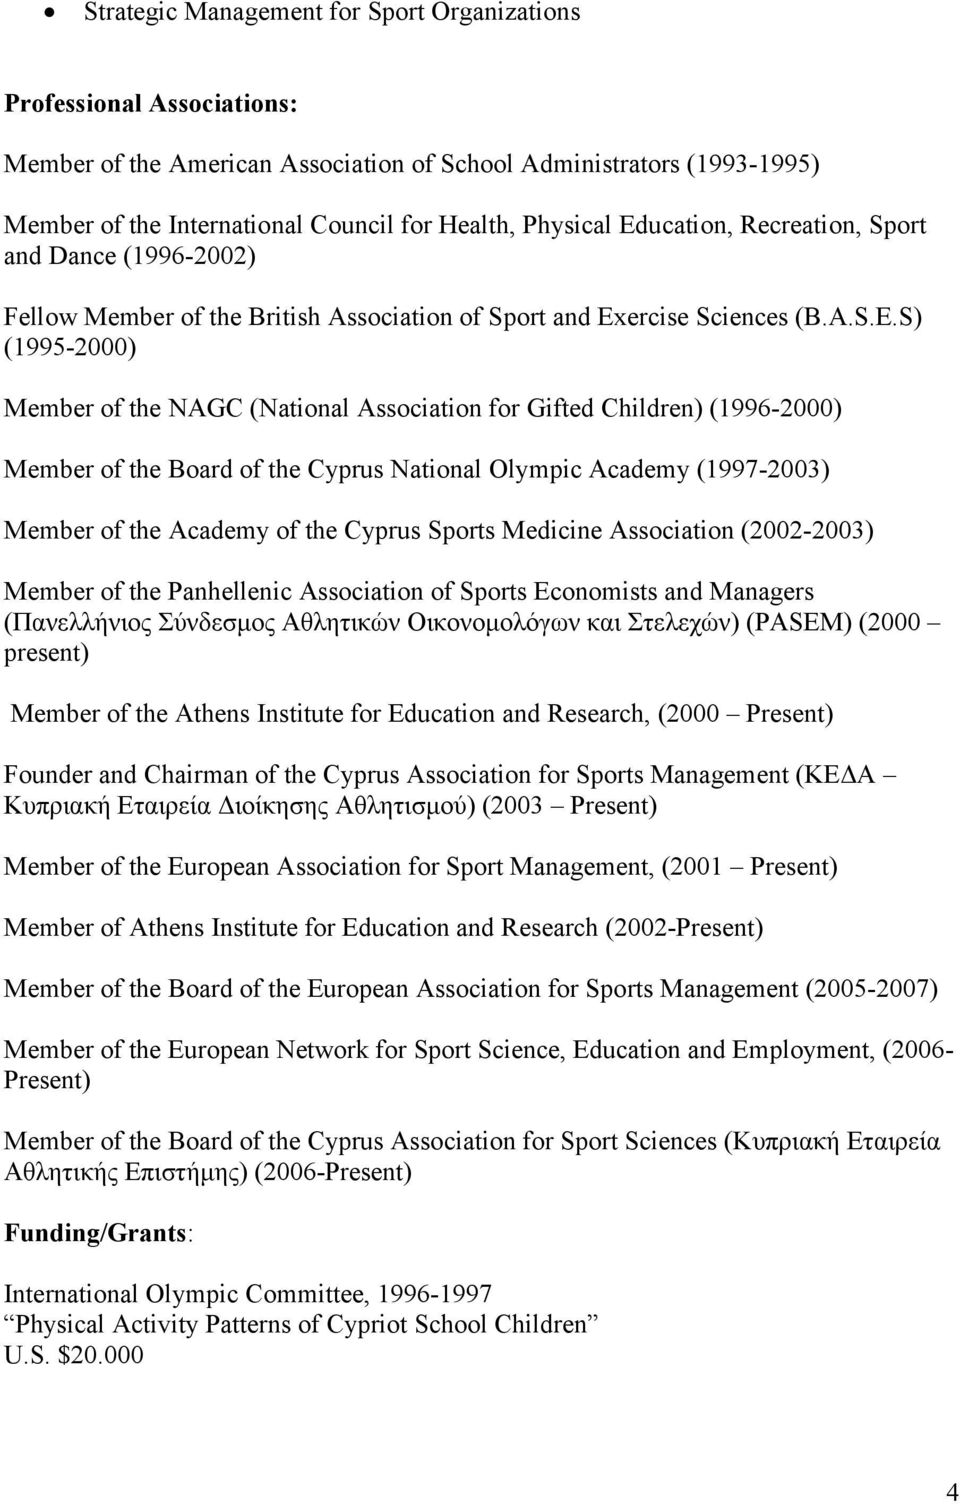 ucation, Recreation, Sport and Dance (1996-2002) Fellow Member of the British Association of Sport and Ex